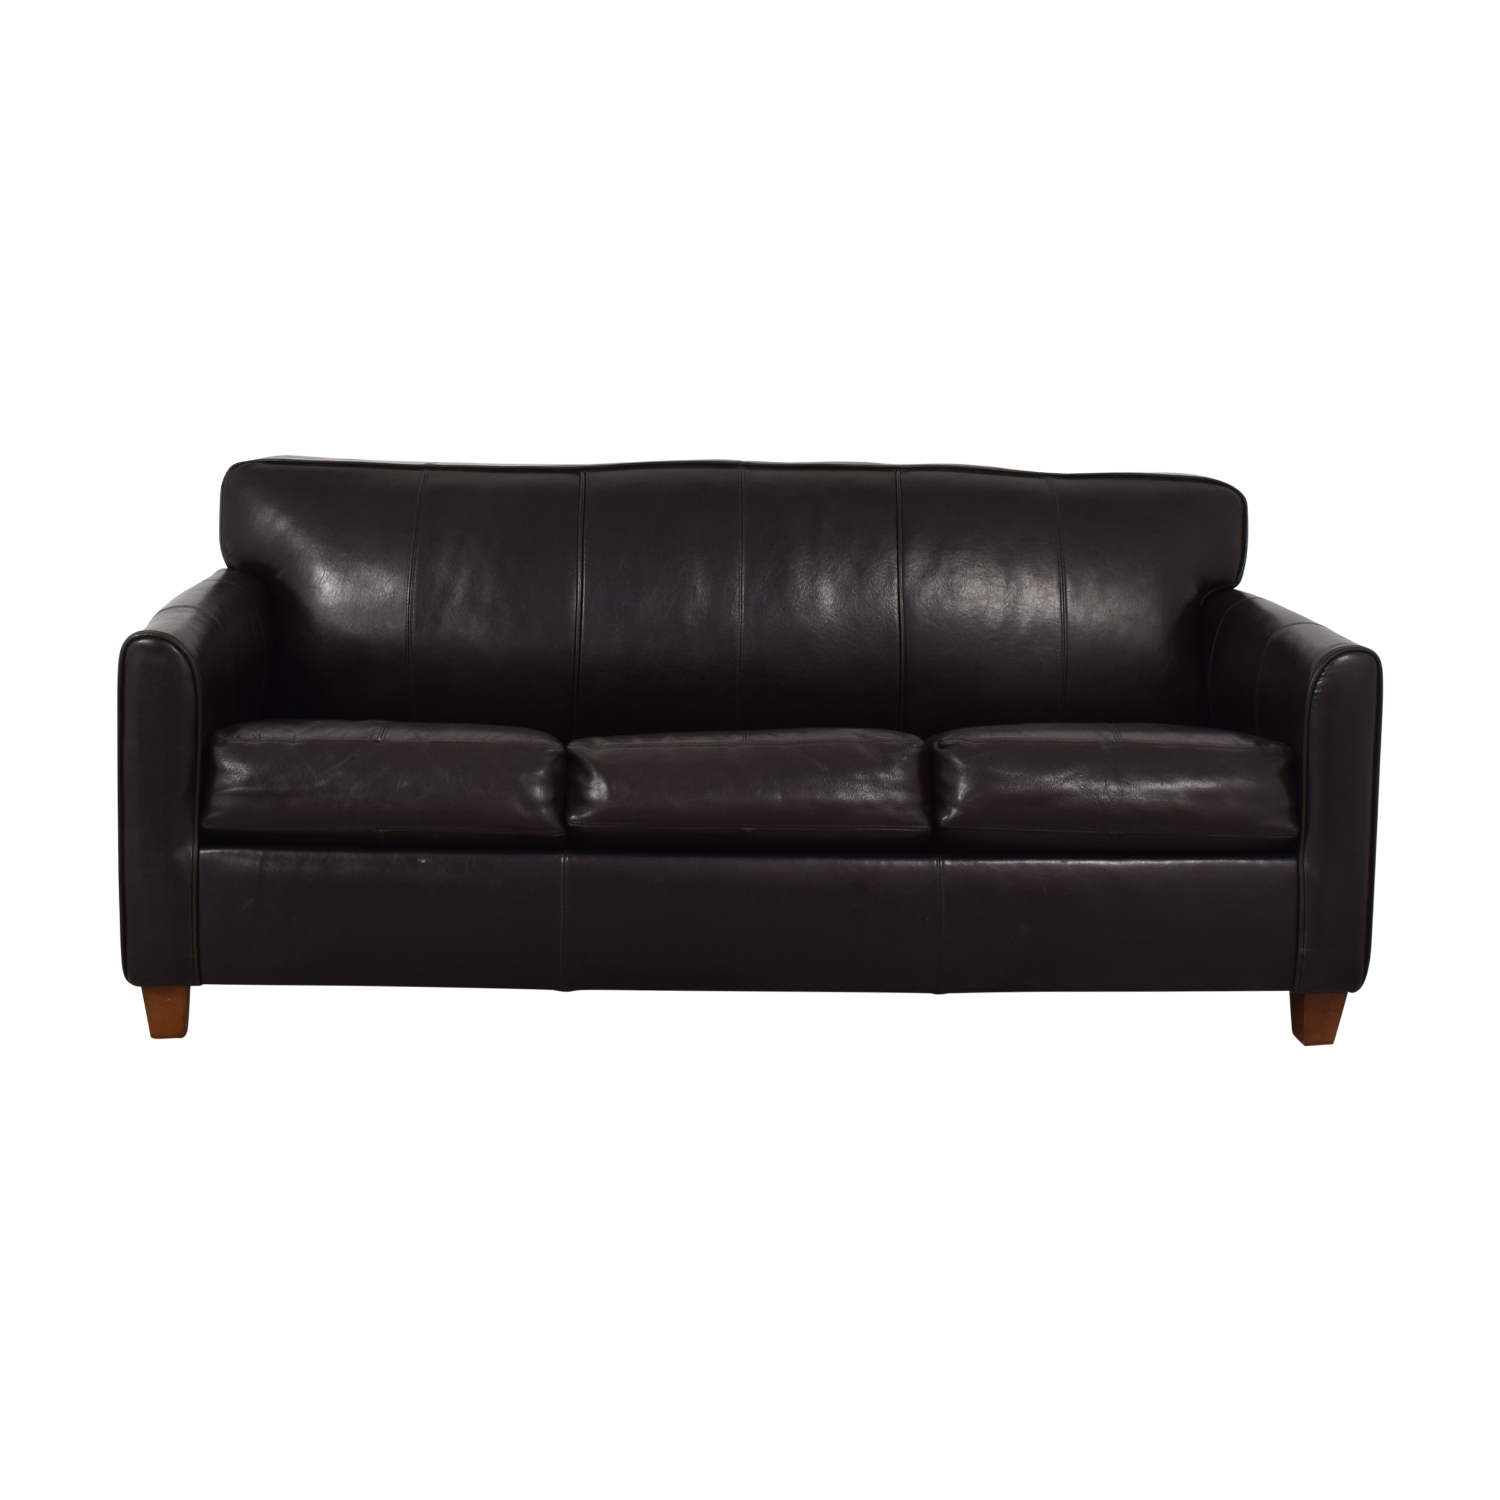 Jennifer Furniture Brown Sleeper Sofa / Sofa Beds